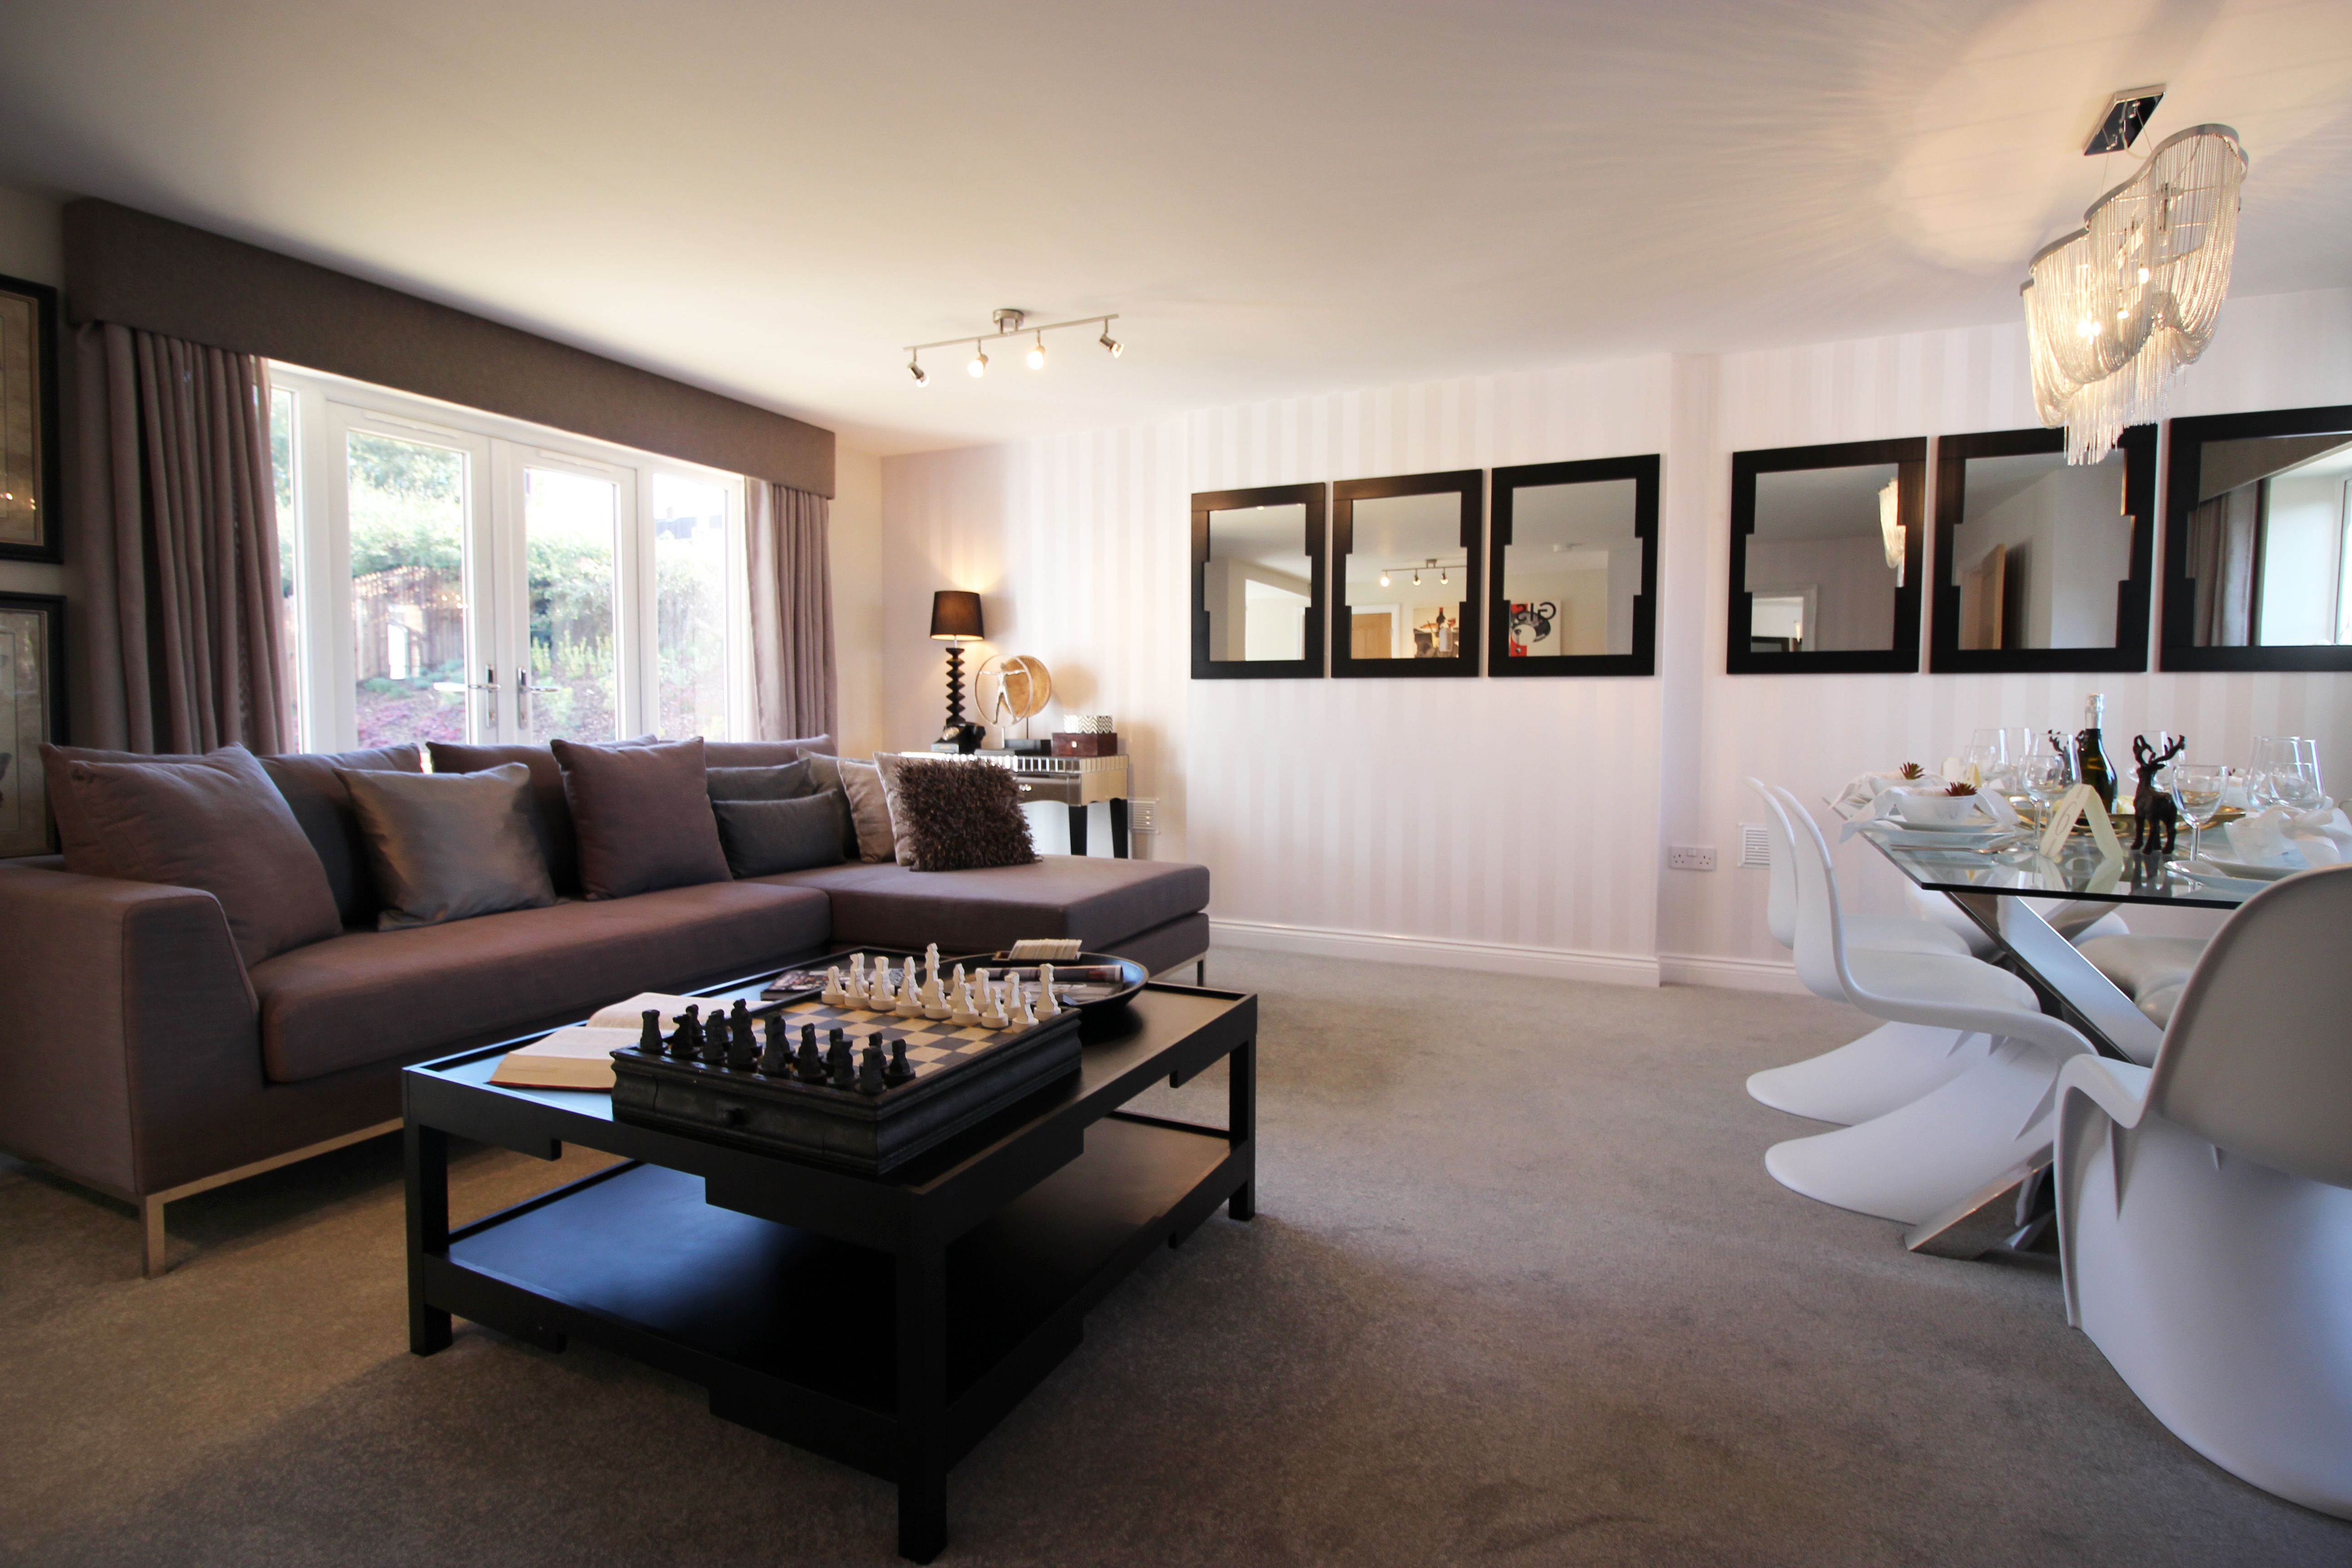 Winchester house showhome living room hathorn manor rugeley